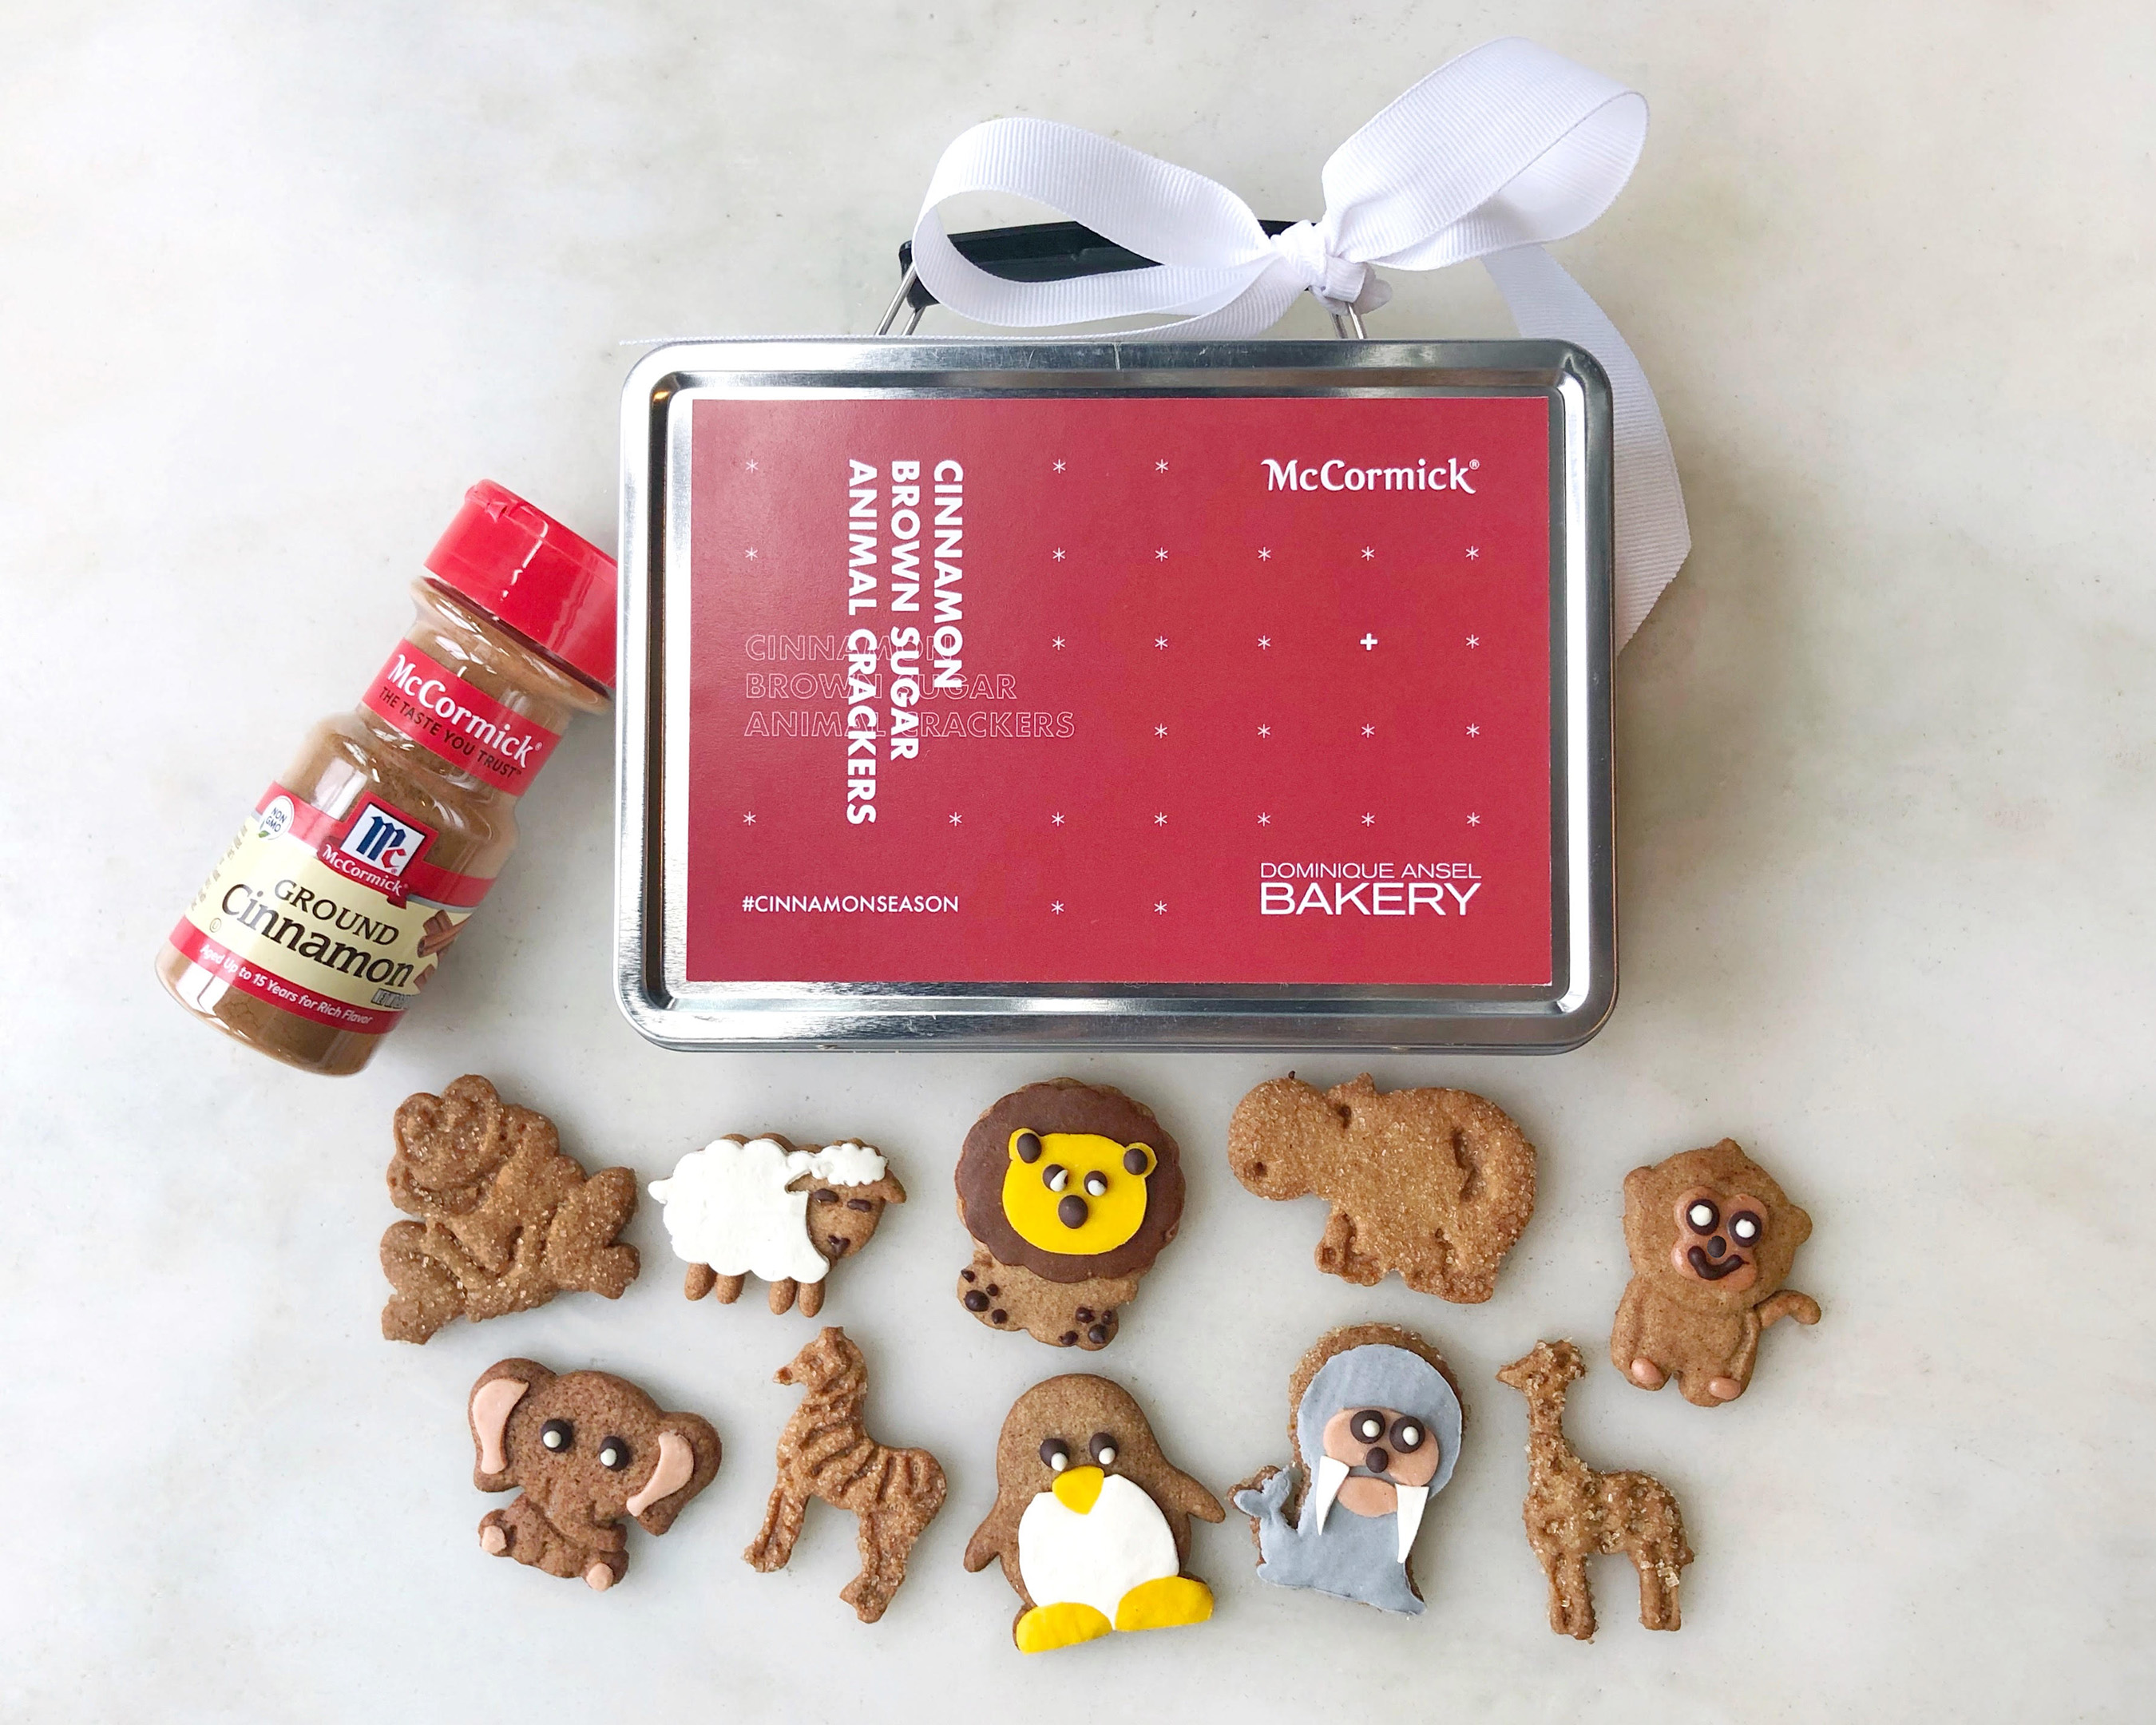 McCormick X Dominque Ansel Limited-Edition Cinnamon Brown Sugar Animal Crackers